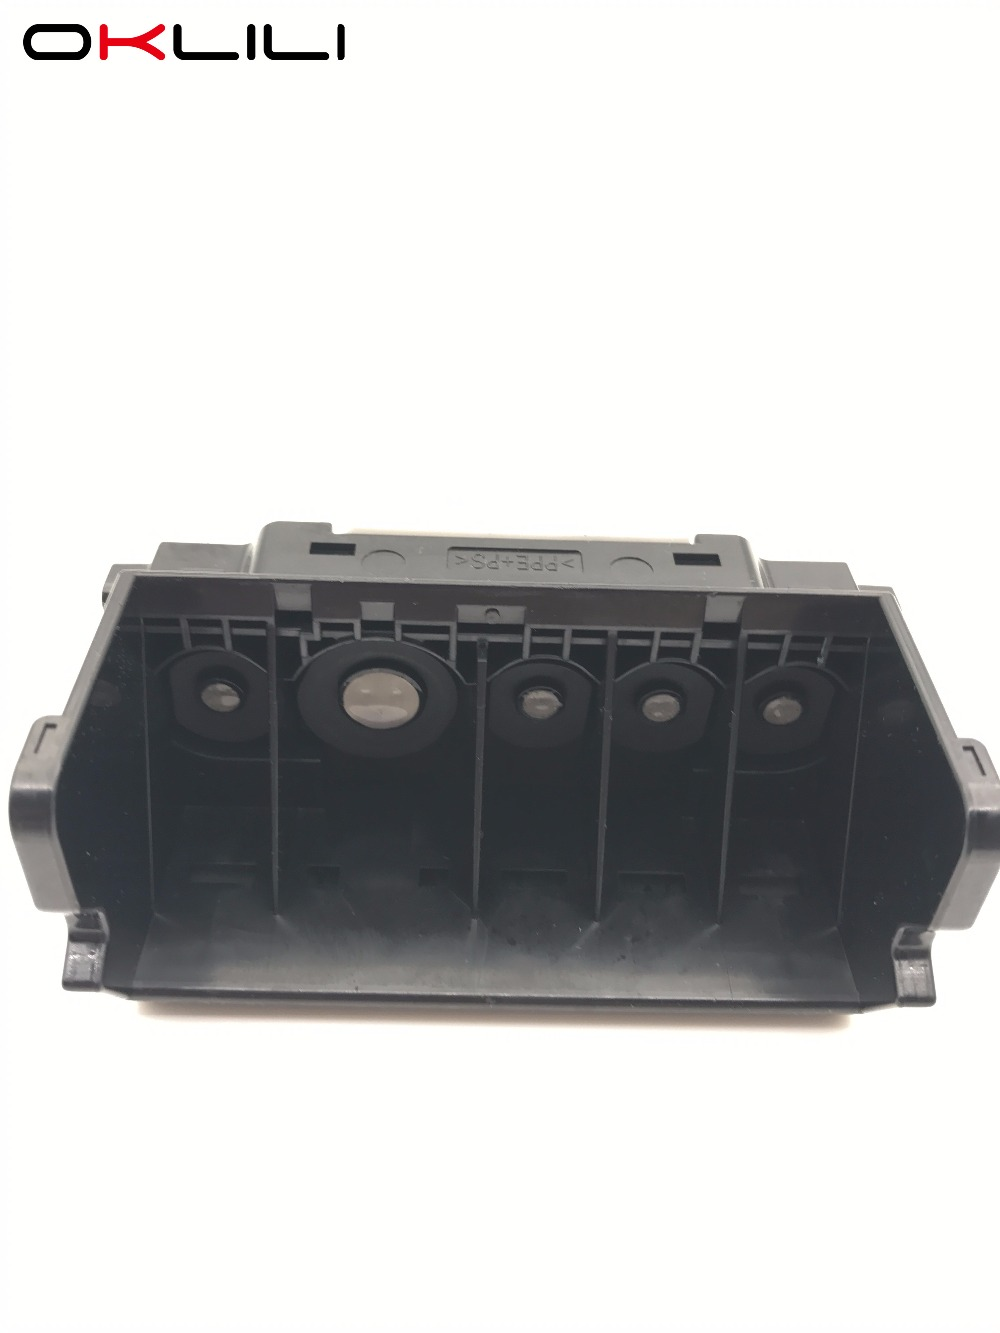 QY6 0080 Printhead Print Head Printer Head for Canon iP4820 iP4840 iP4850 iX6520 iX6550 MX715 MX885